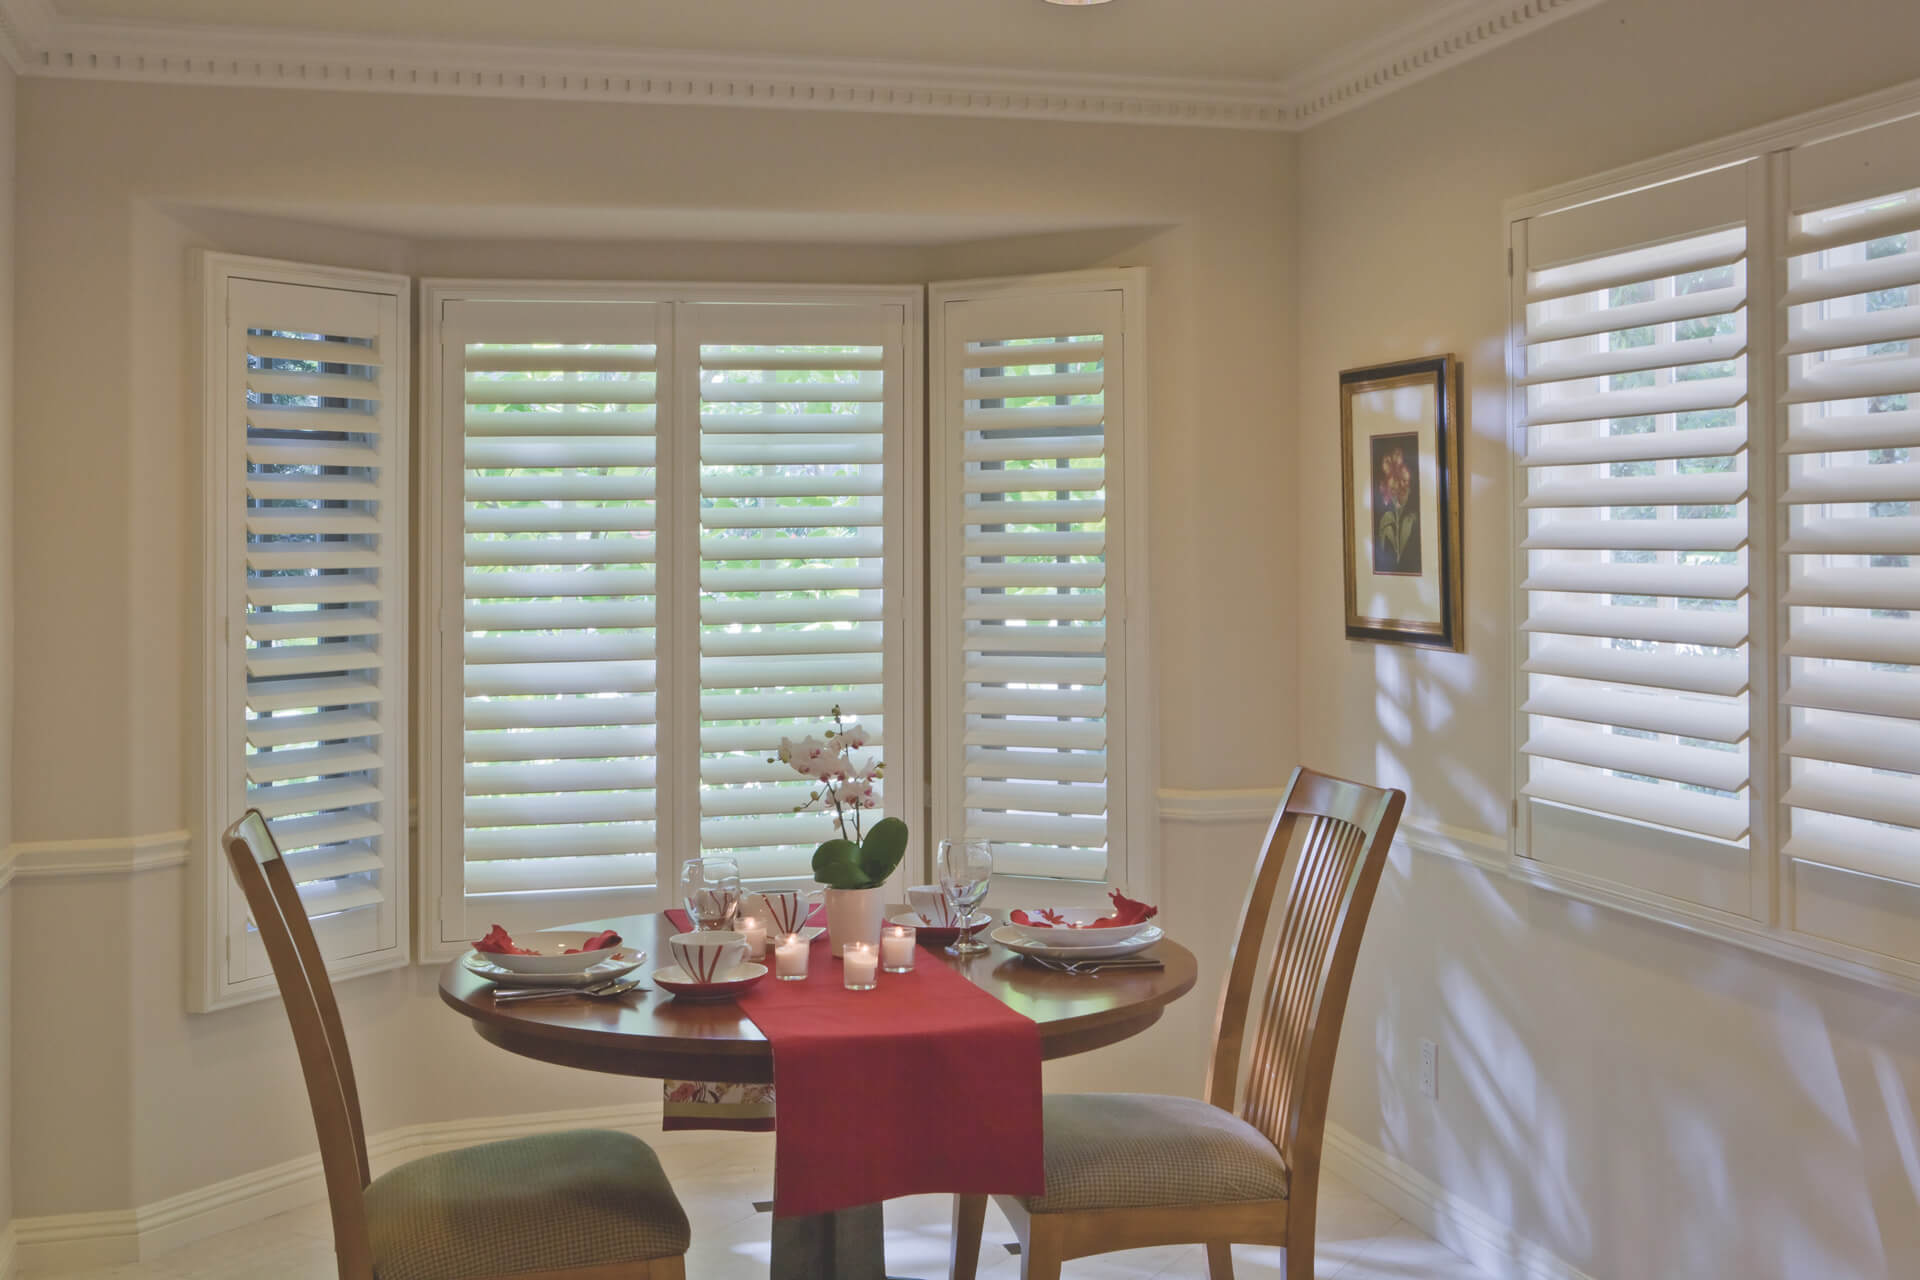 How To Clean Wooden Venetian Blinds